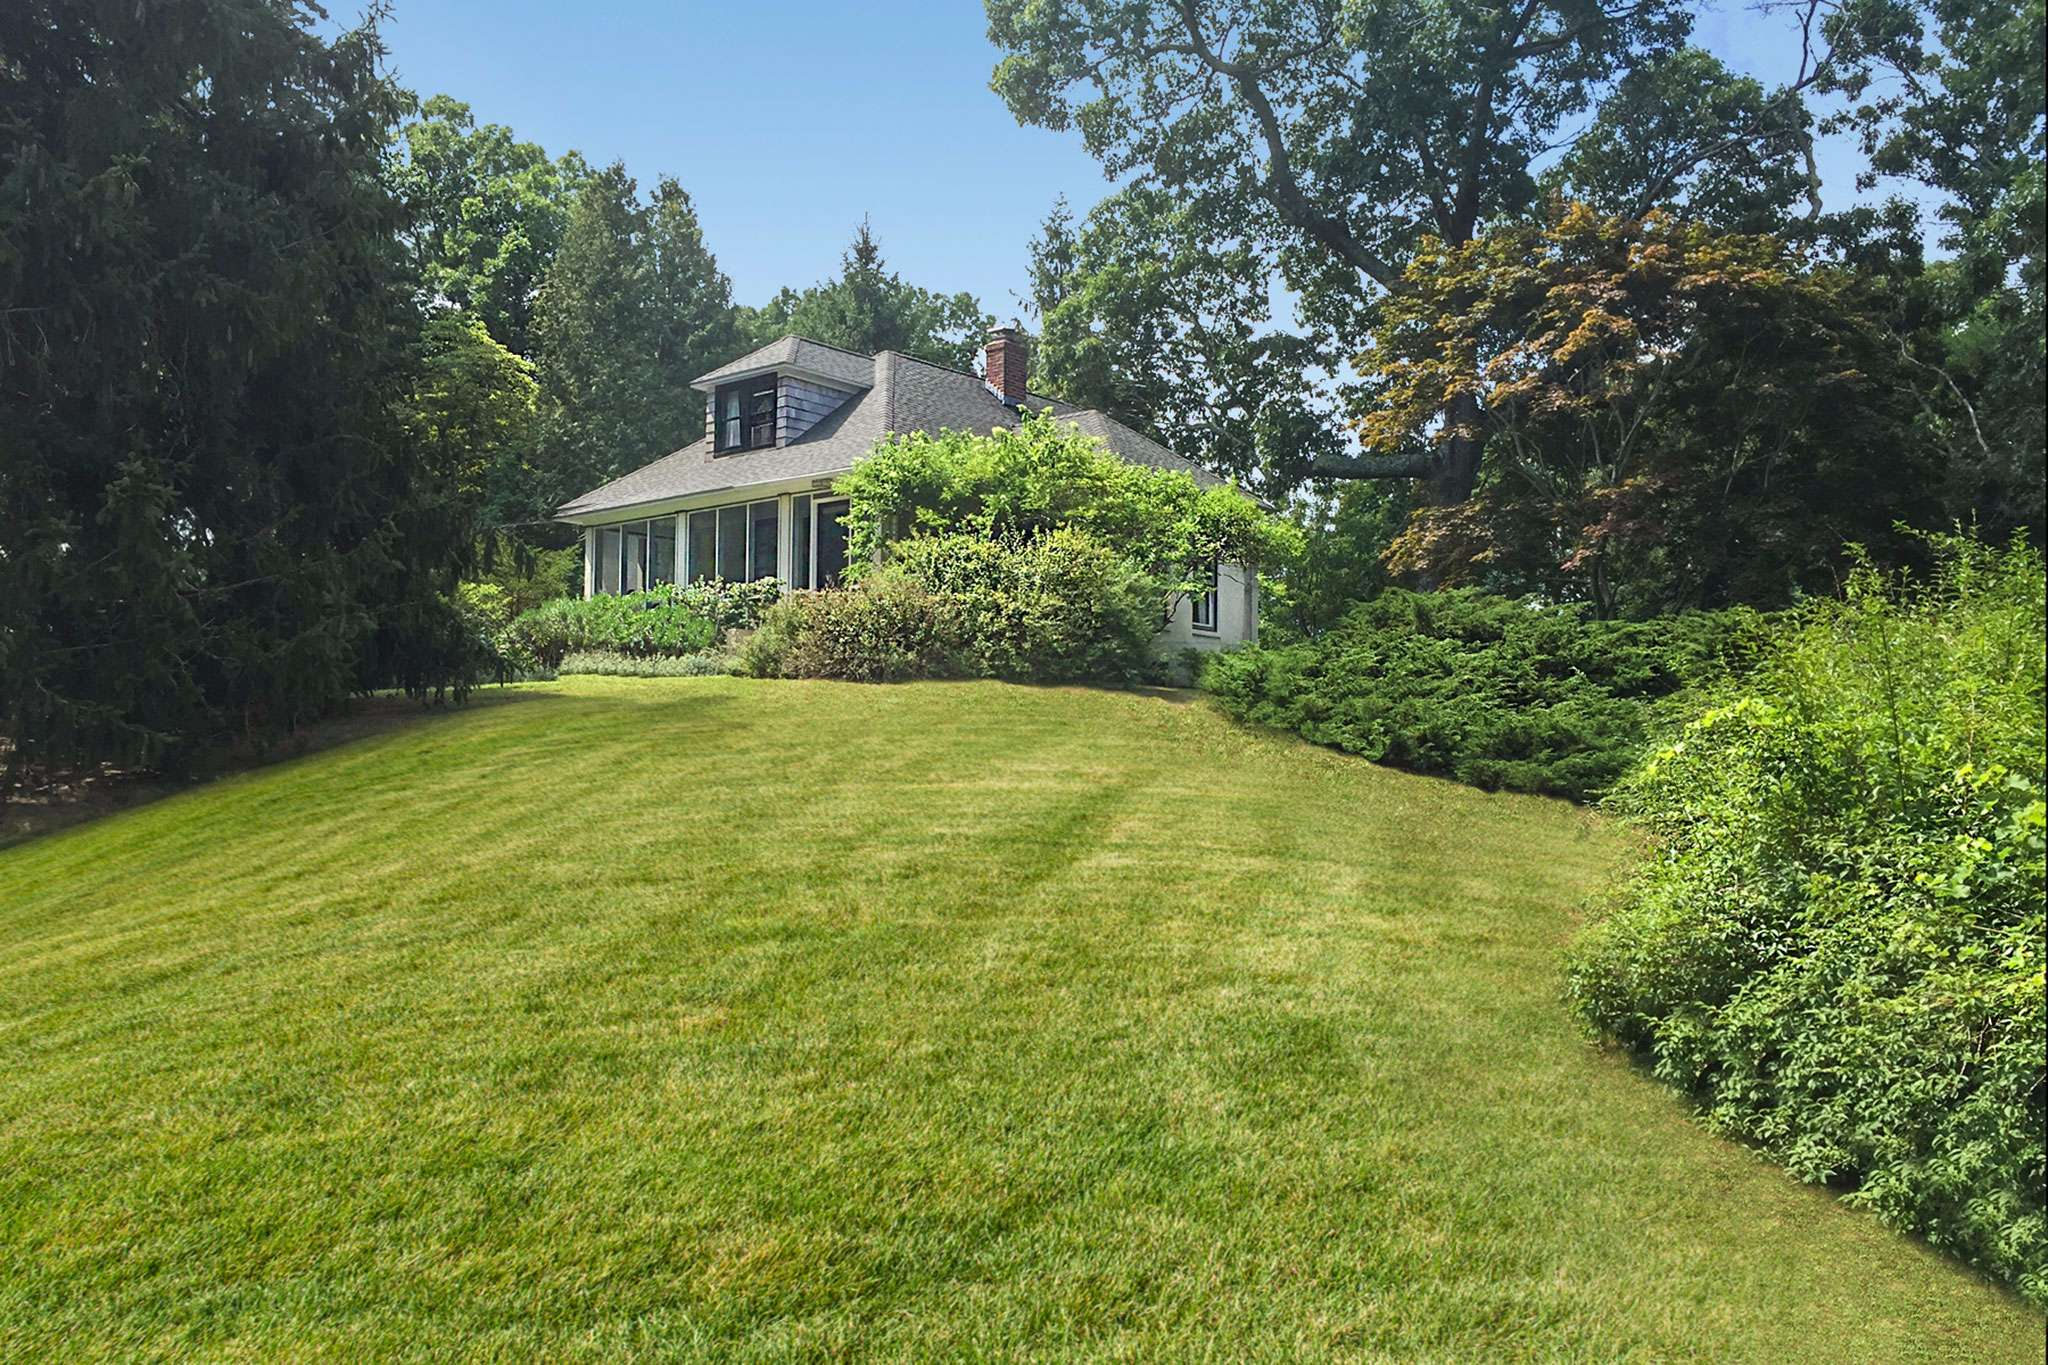 Single Family Home for Sale at Rarely Available - One Of The Largest Village Lots 46 Palmer Terrace, Sag Harbor, New York